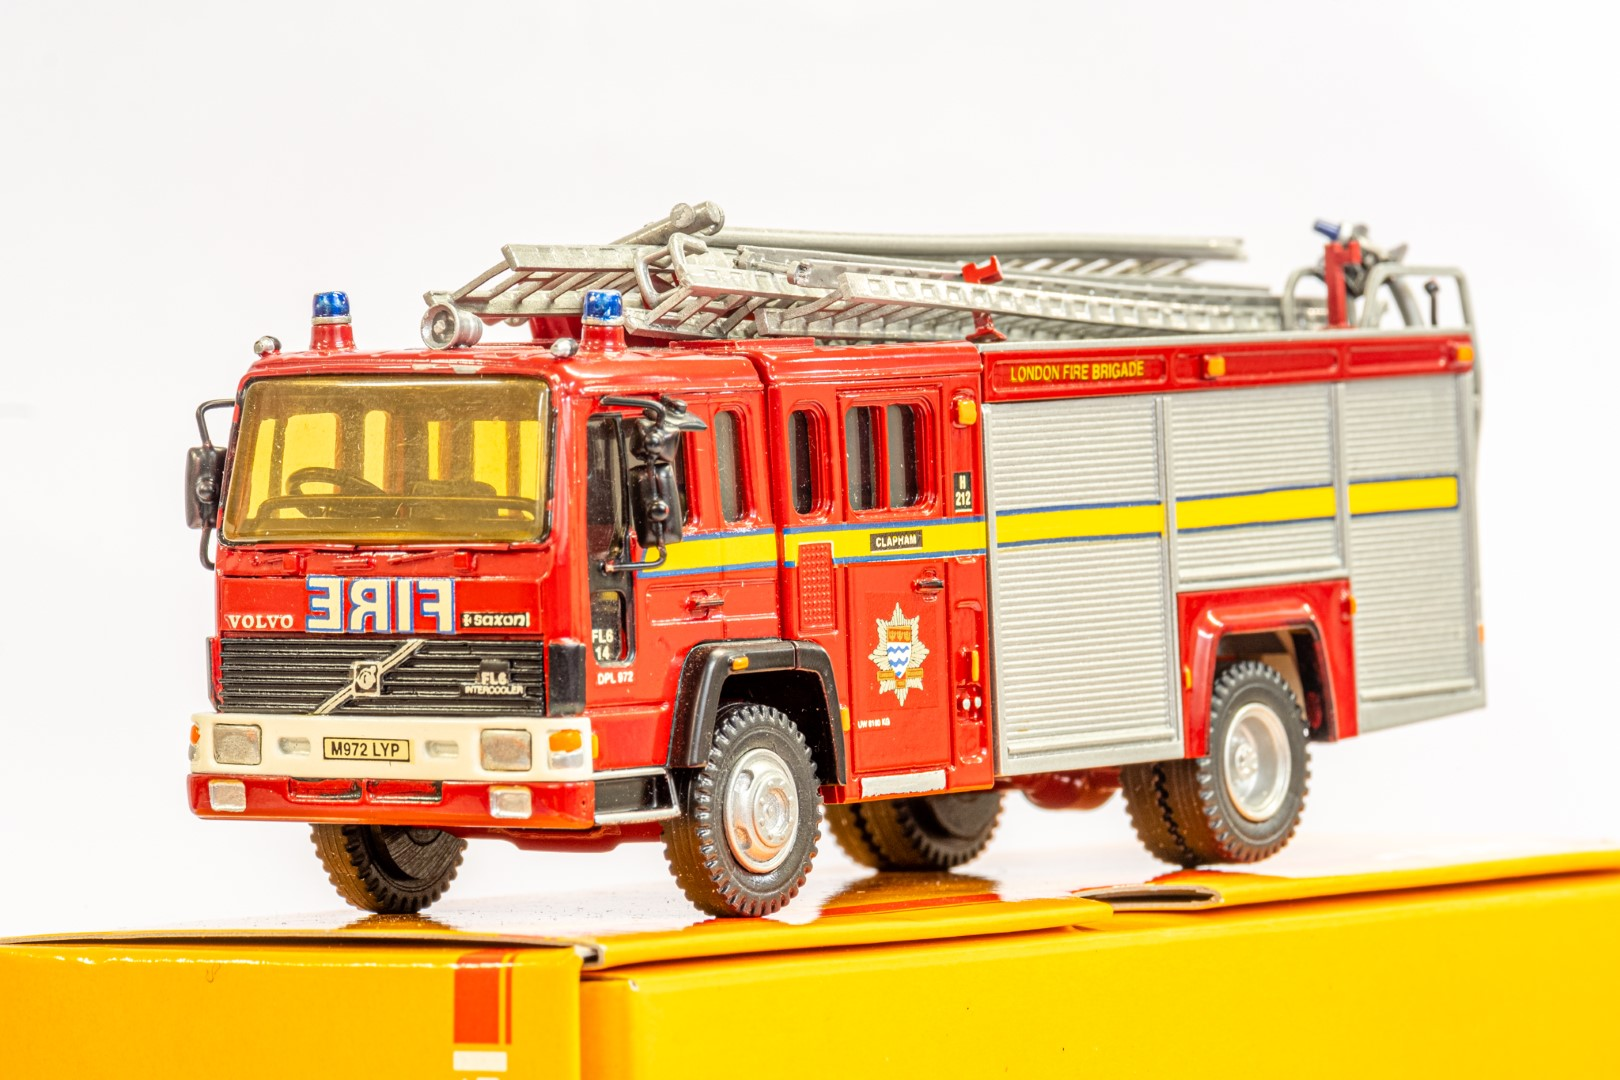 Fire Brigade Models Volvo Fire Engine - Clapham Fire Brigade - In Wrong Box - Image 4 of 7